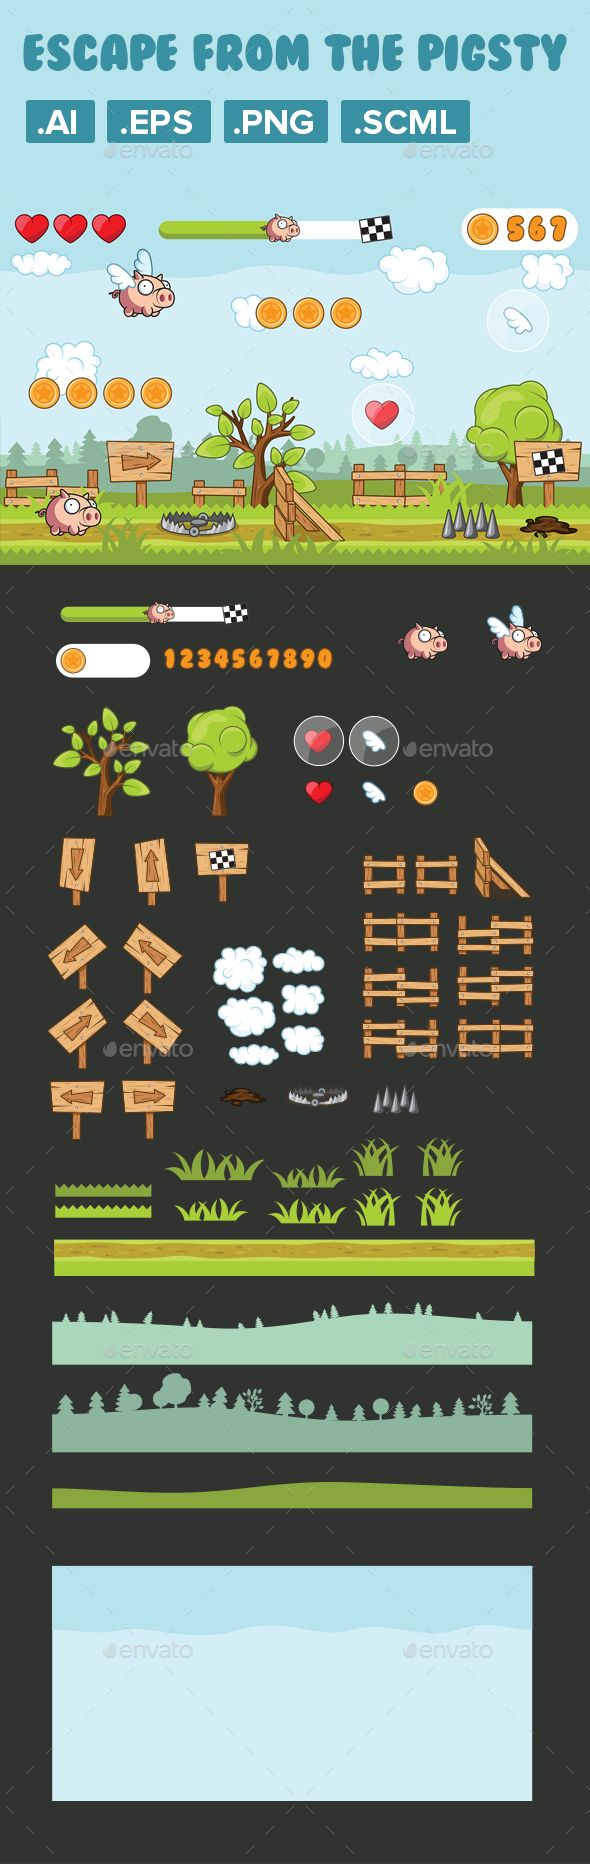 Game Asset, 2D Character Pig Runner - Game Kits Game Assets   Download: https://graphicriver.net/item/game-asset-2d-character-pig-runner/19179917?ref=sinzo